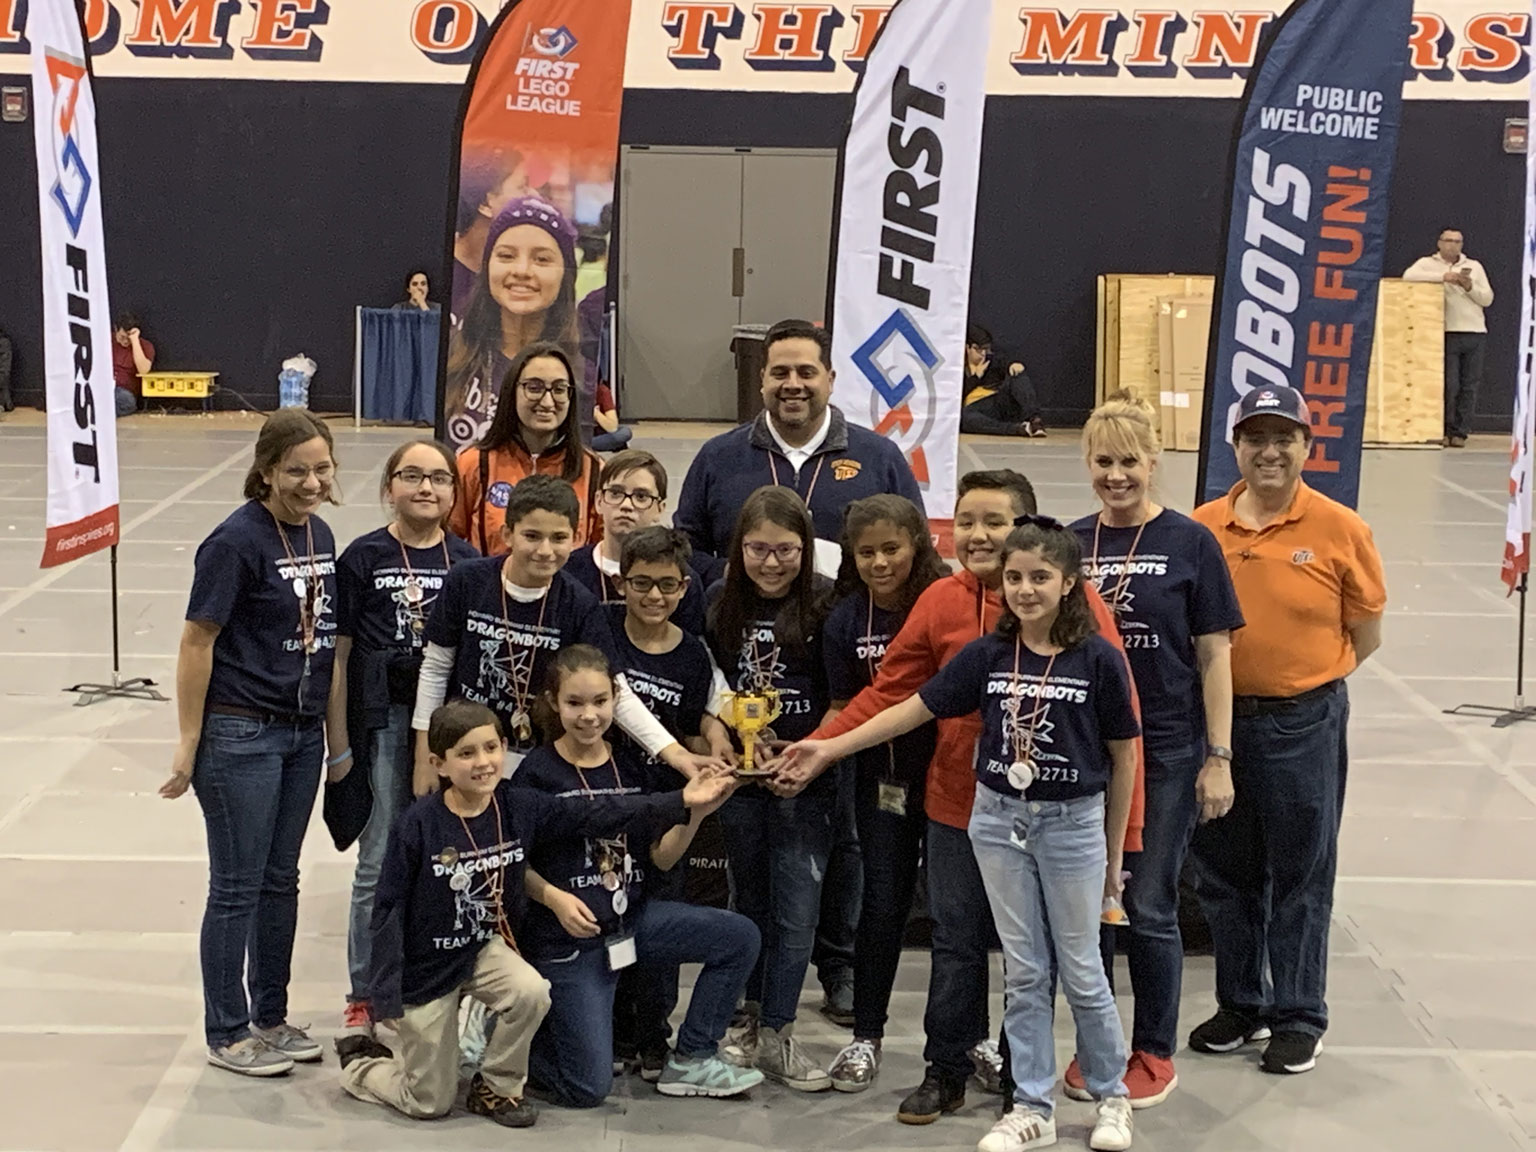 The Dragonbots team hold up their trophy. Representatives from UTEP are also present in the background.